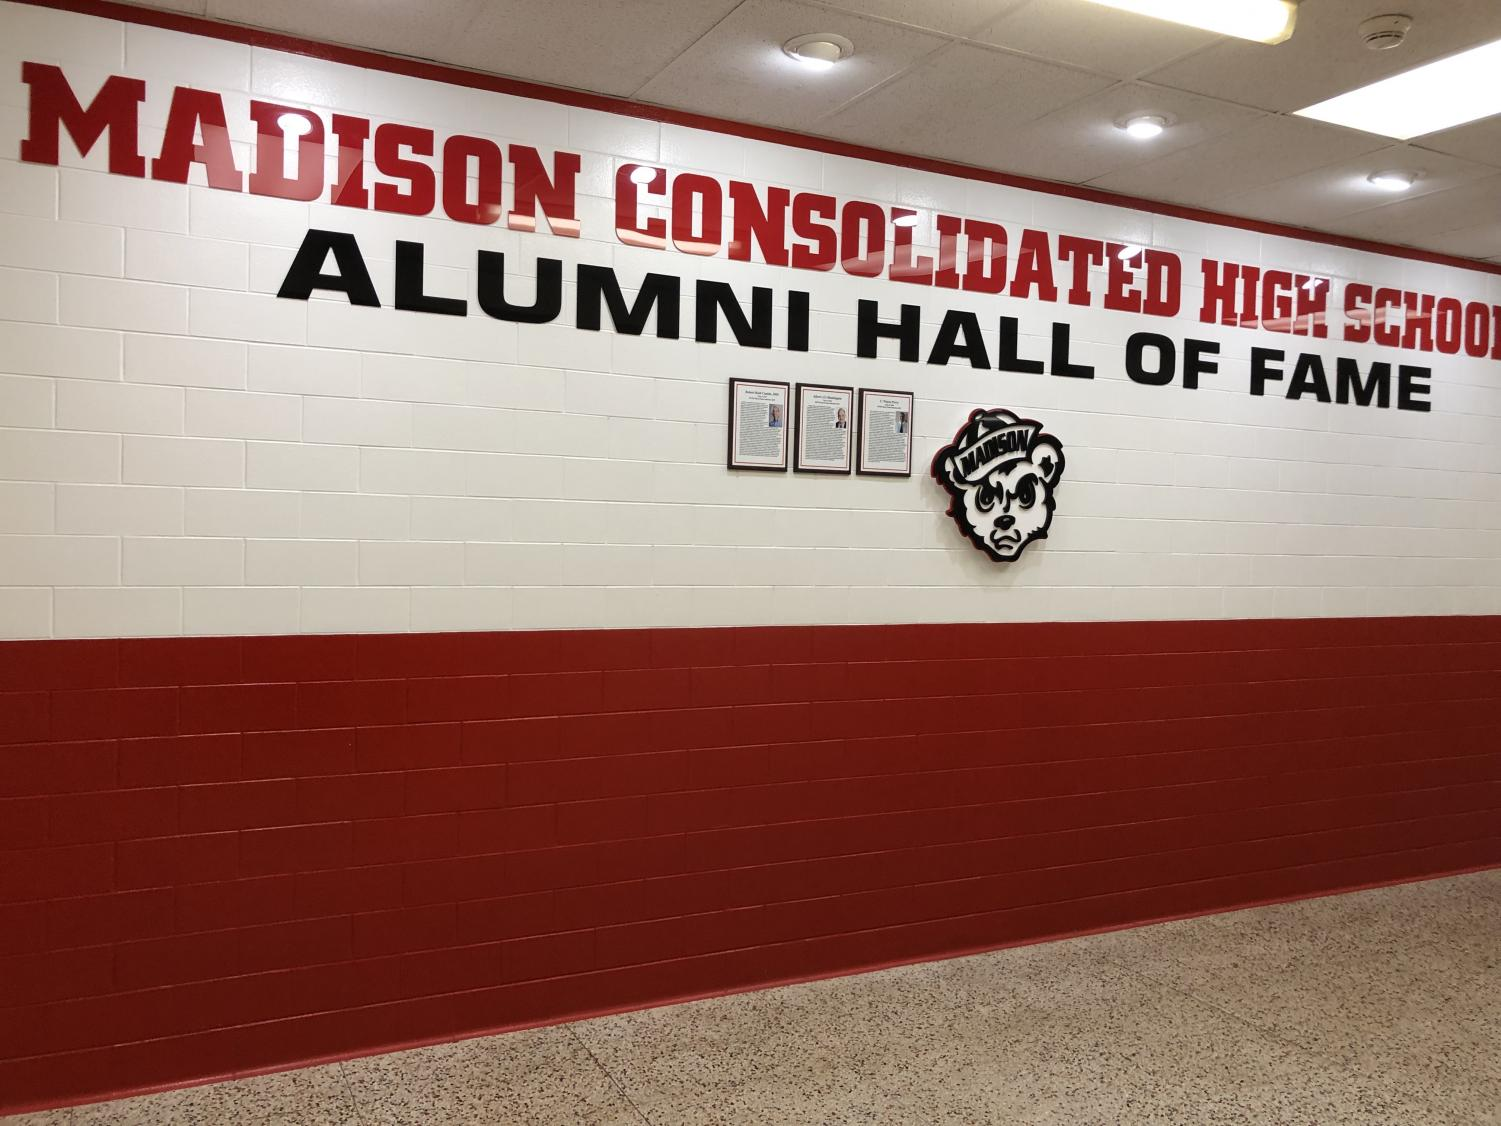 The MCHS Alumni Hall of Fame located in M Wing of the high school.